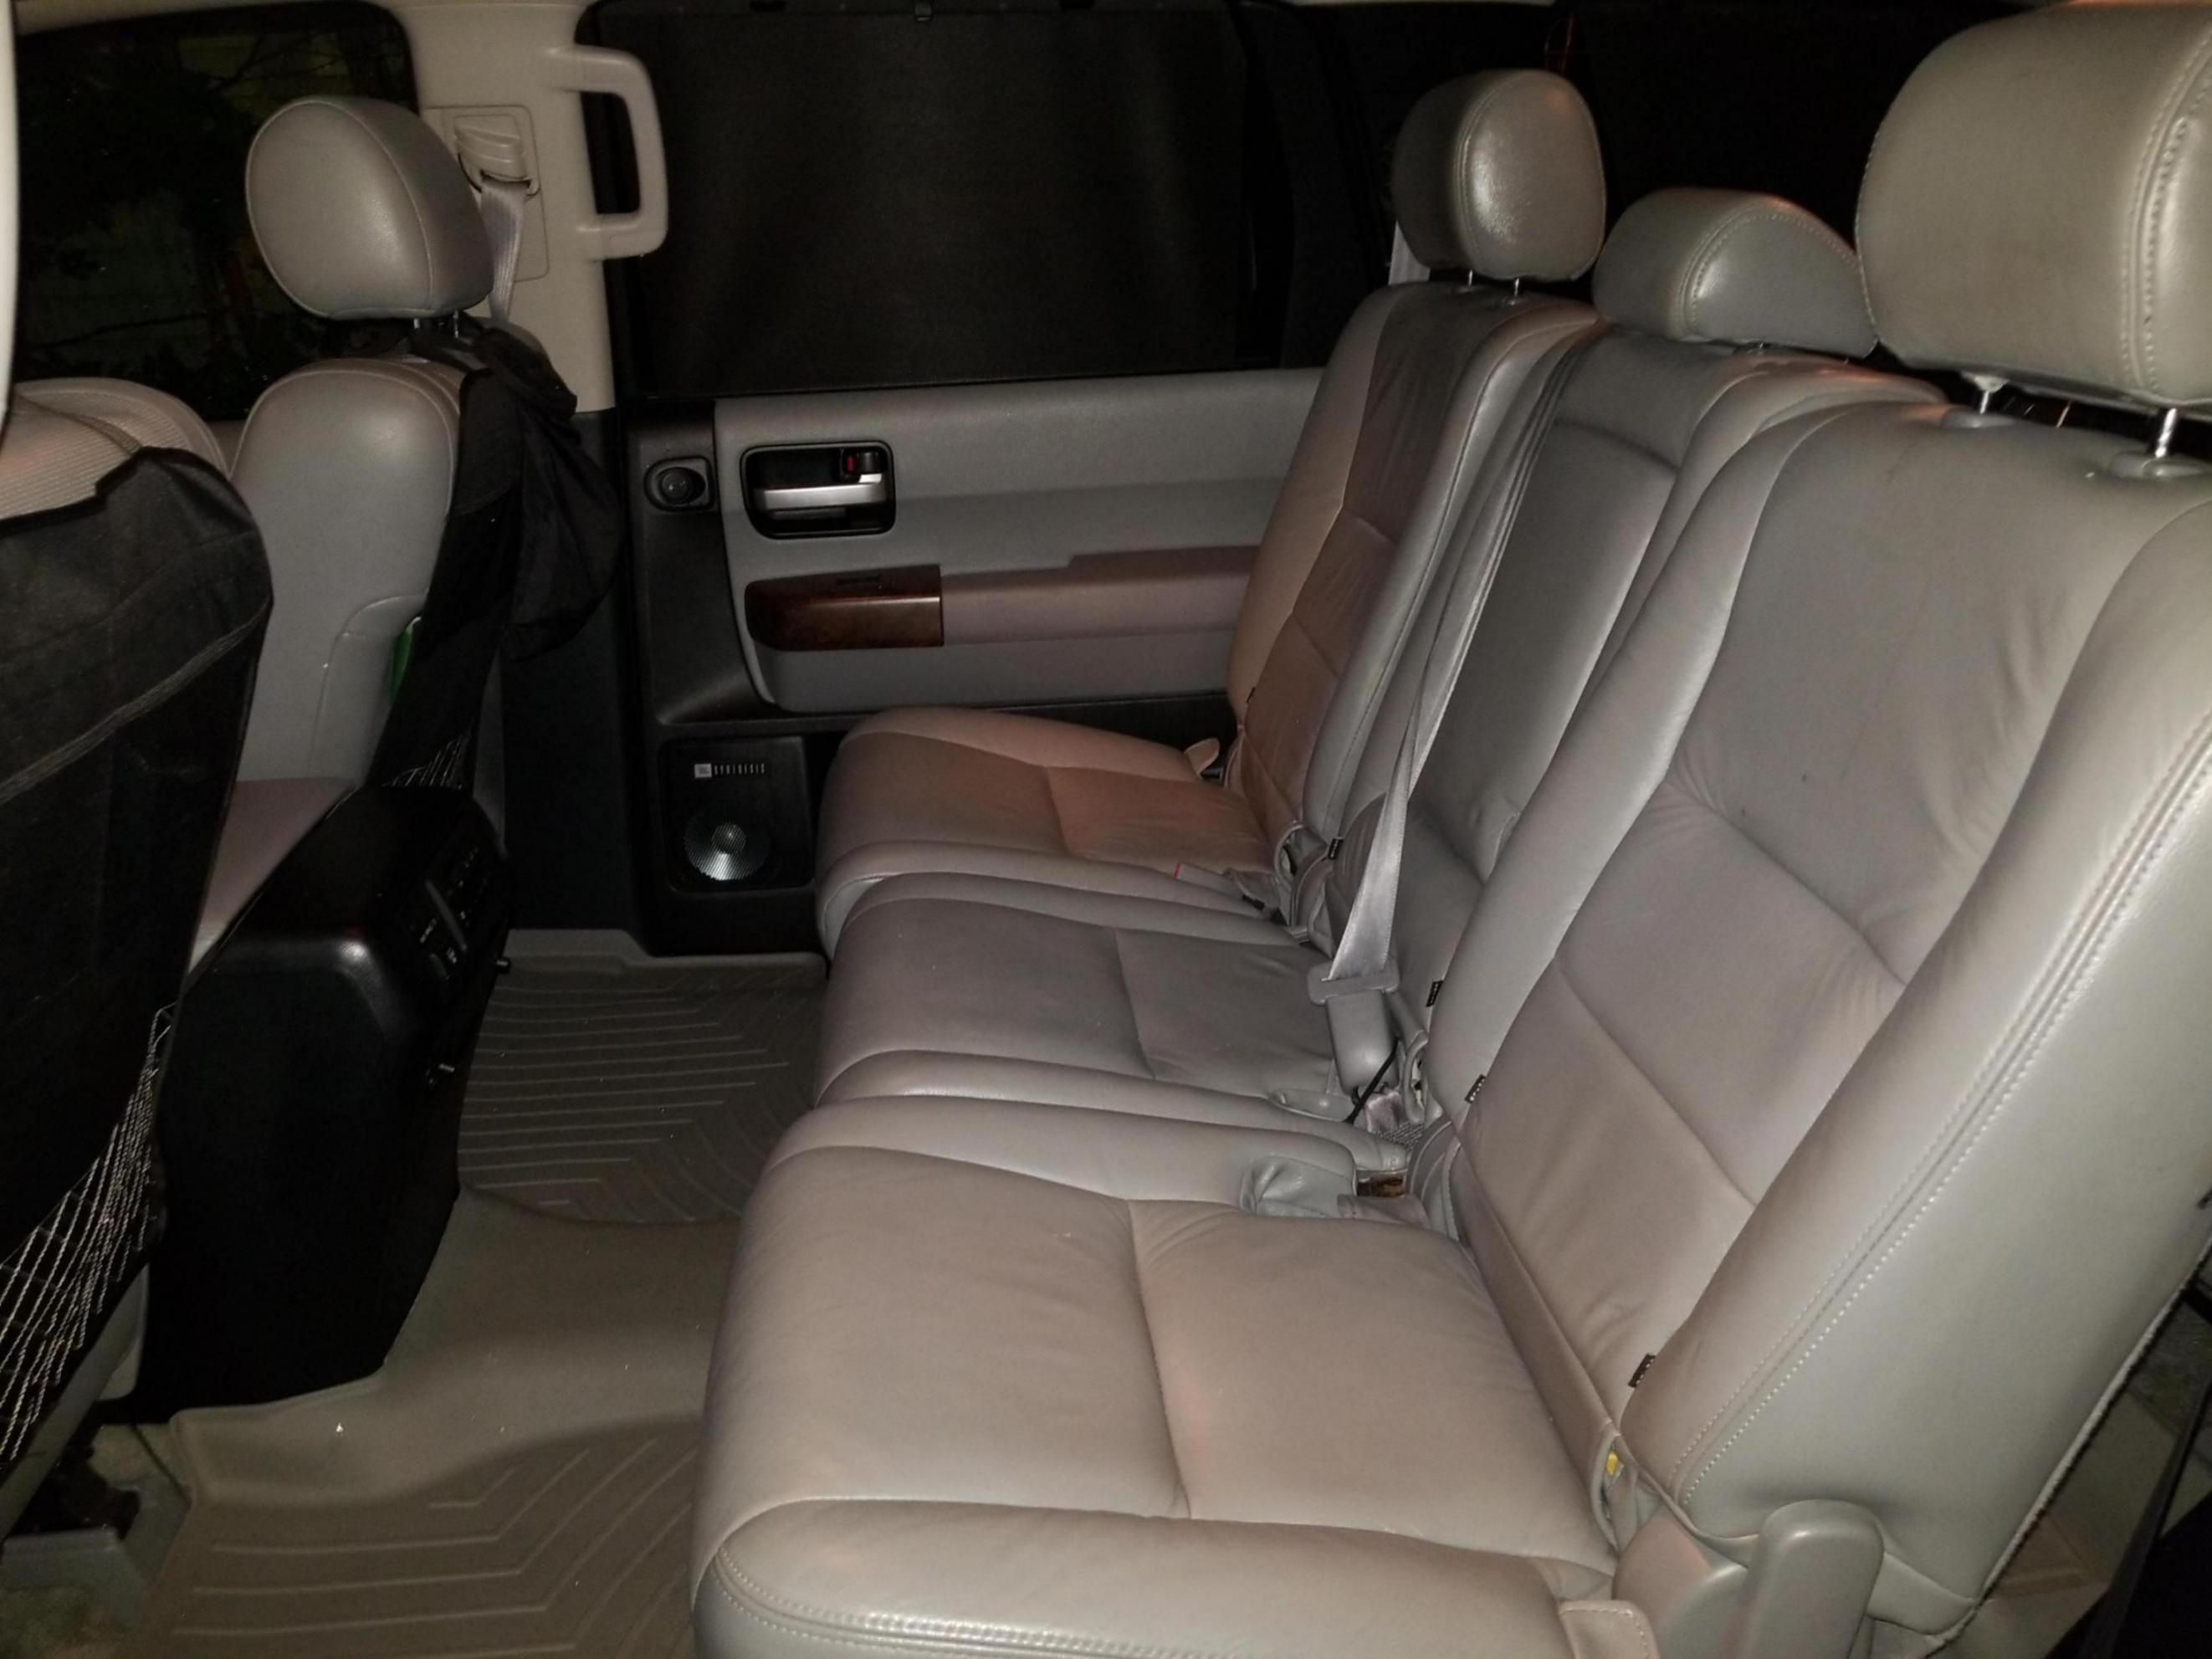 2018 toyota sienna 2nd row seat removal